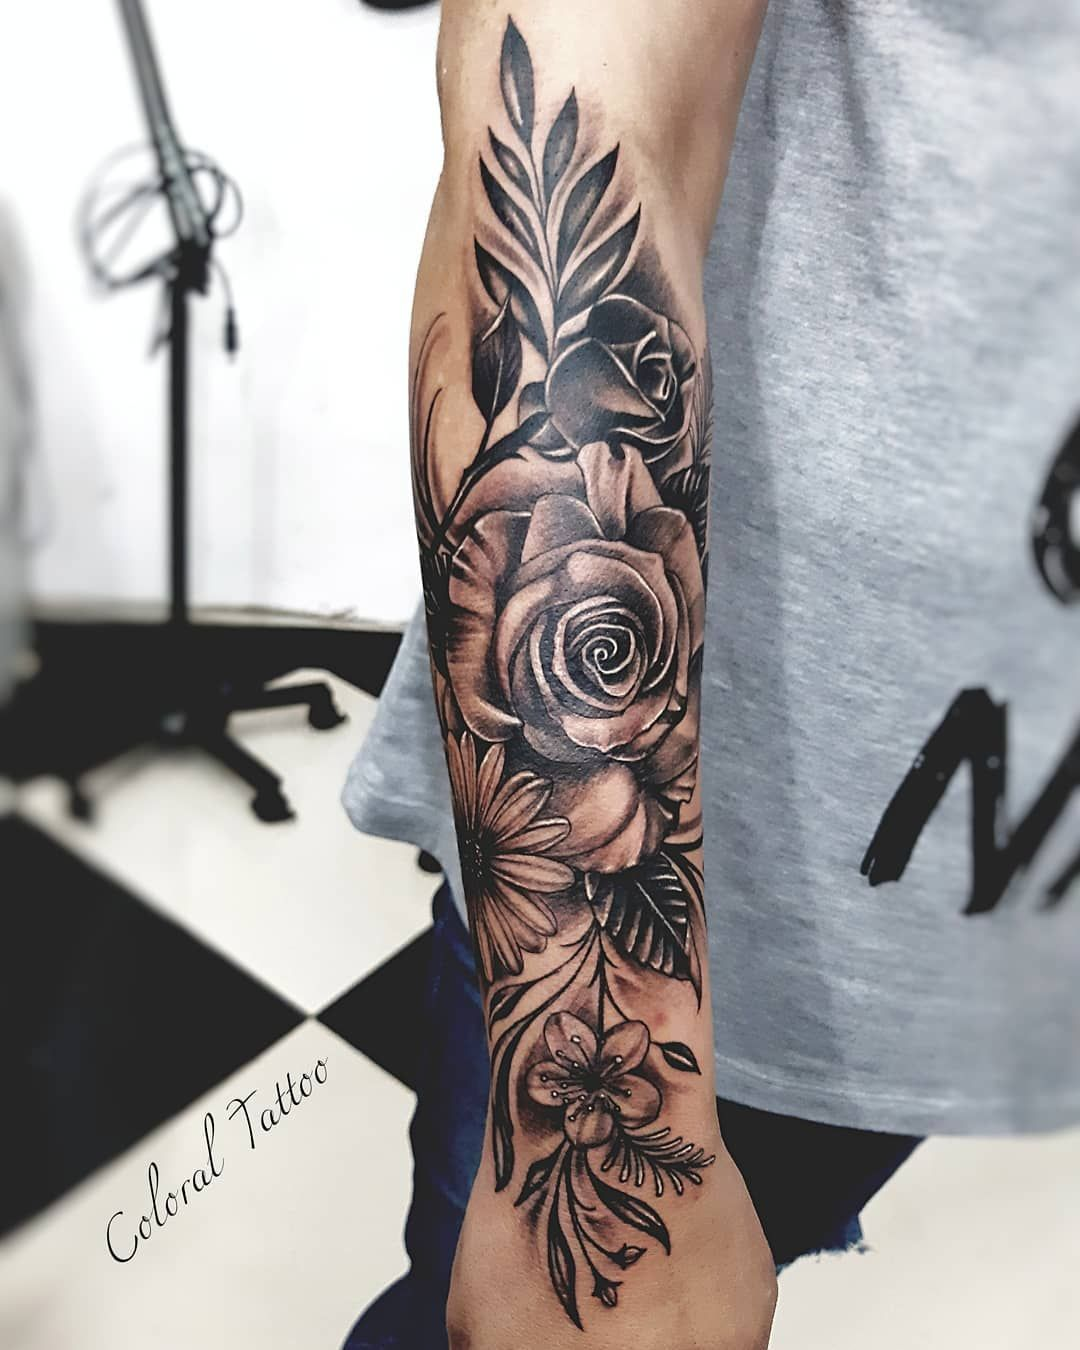 Love this if it was a little lighter Lower belly tattoos